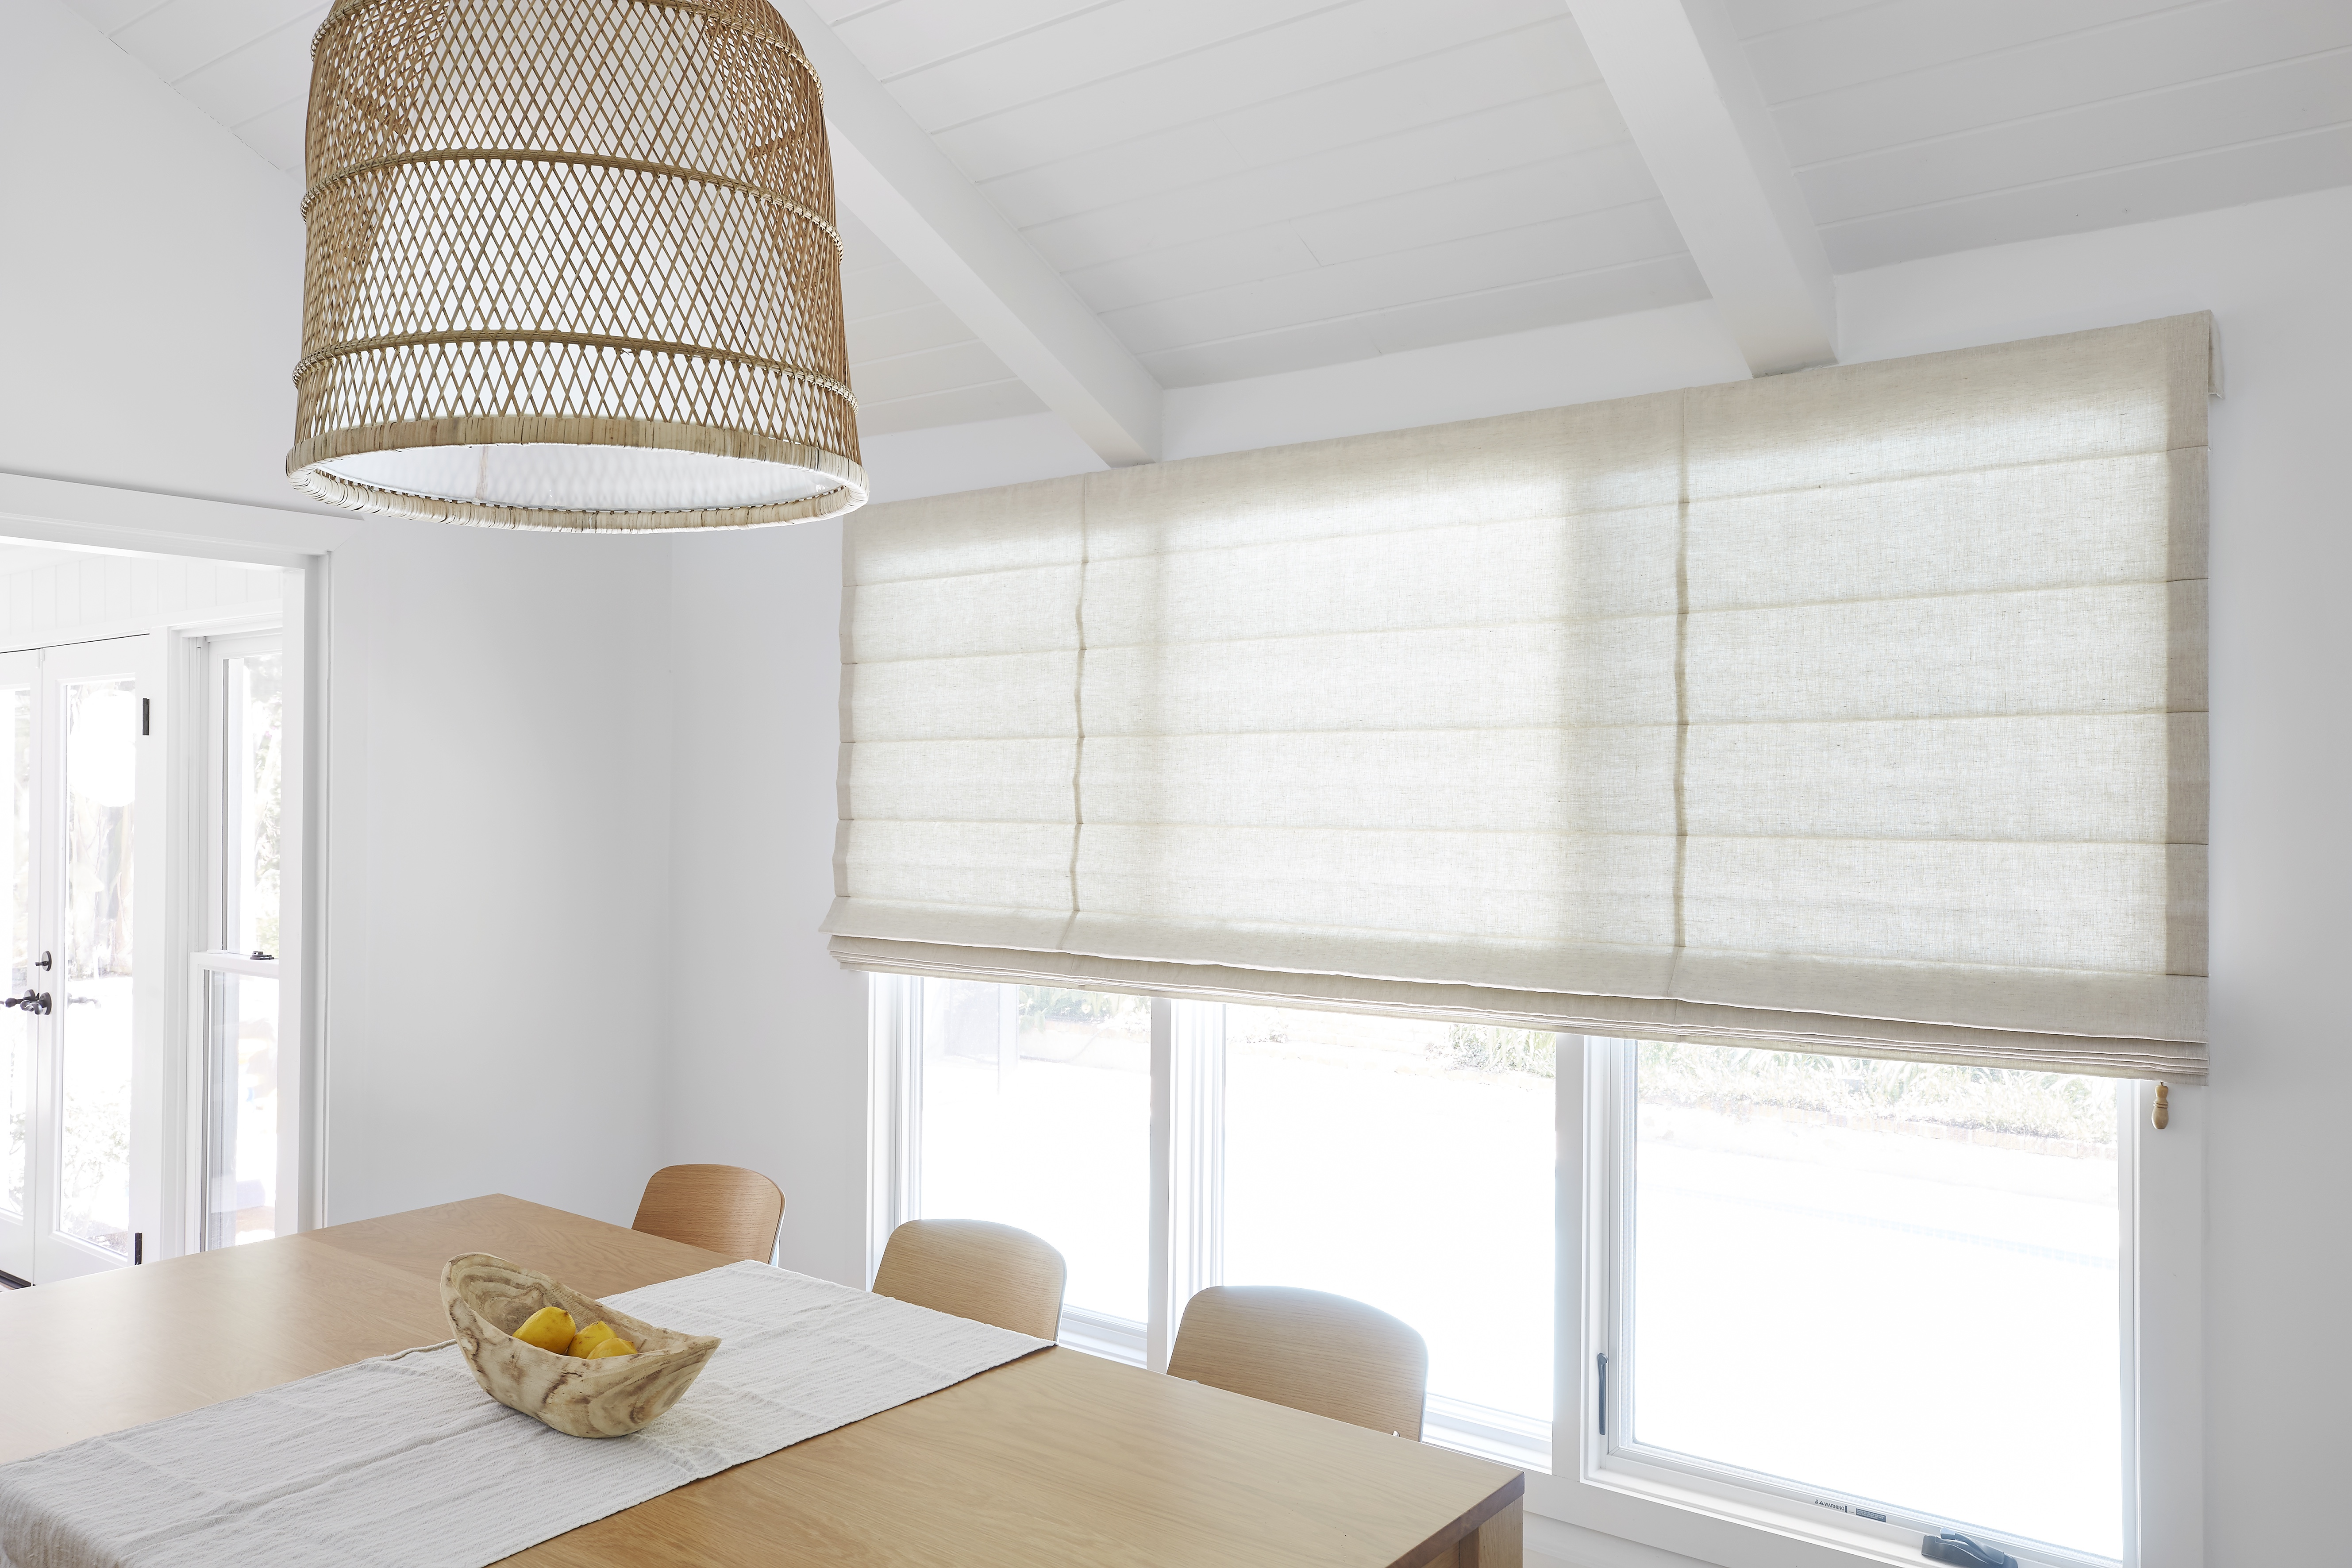 Evehem flat Roman shades are half-closed in light, bright modern-style dining room.